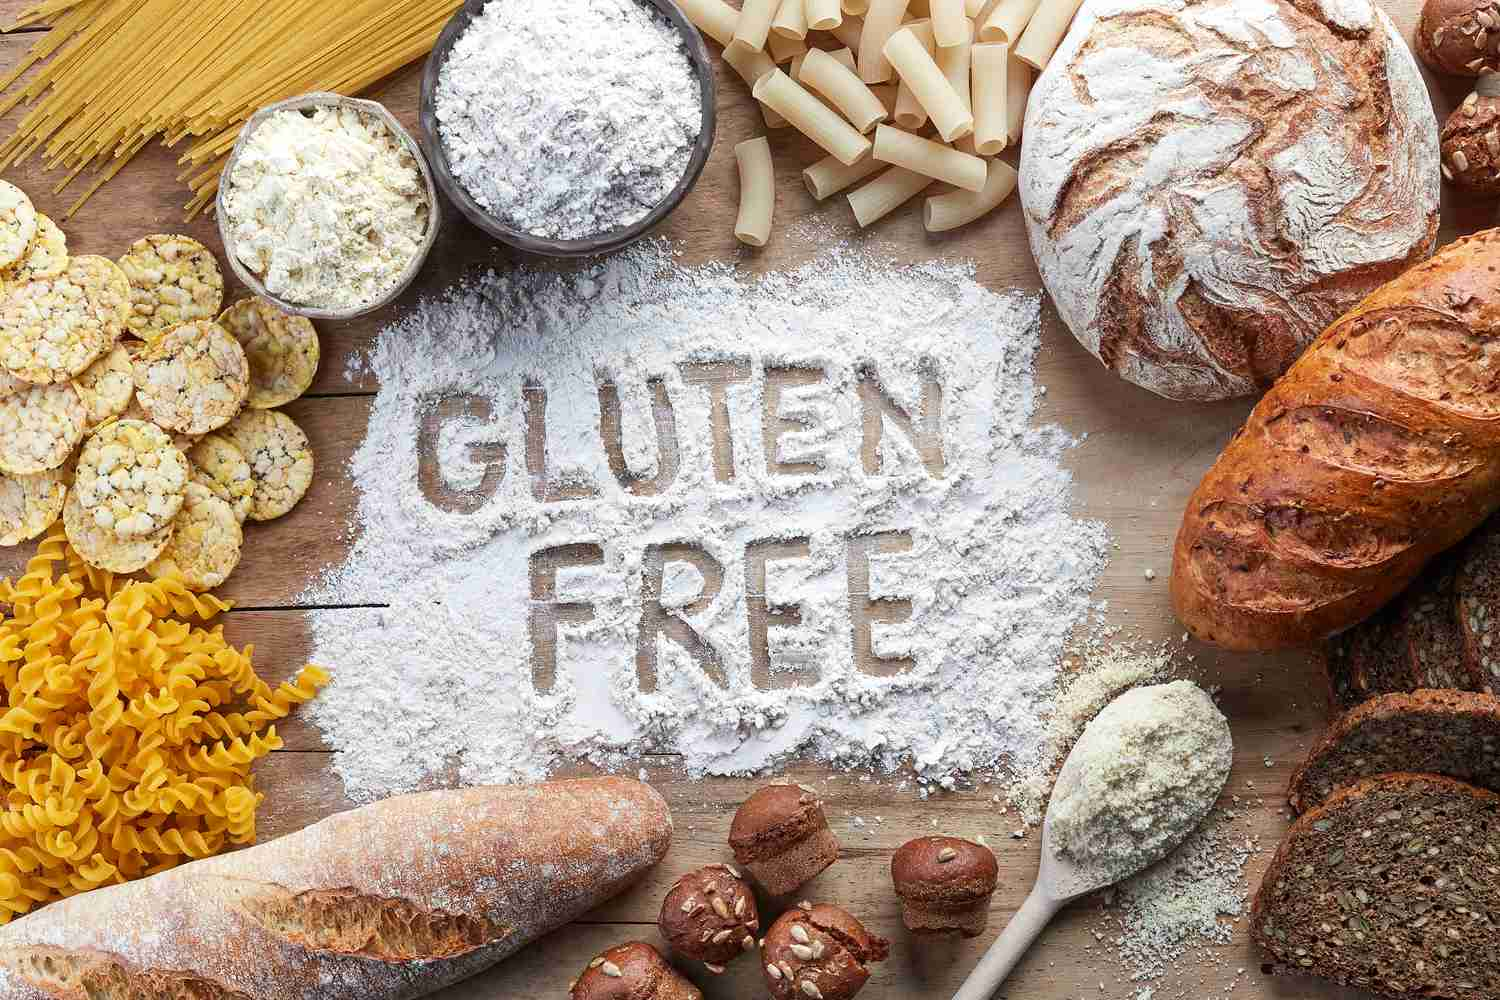 Gluten Intolerance During Pregnancy – Signs, Symptoms and Complications